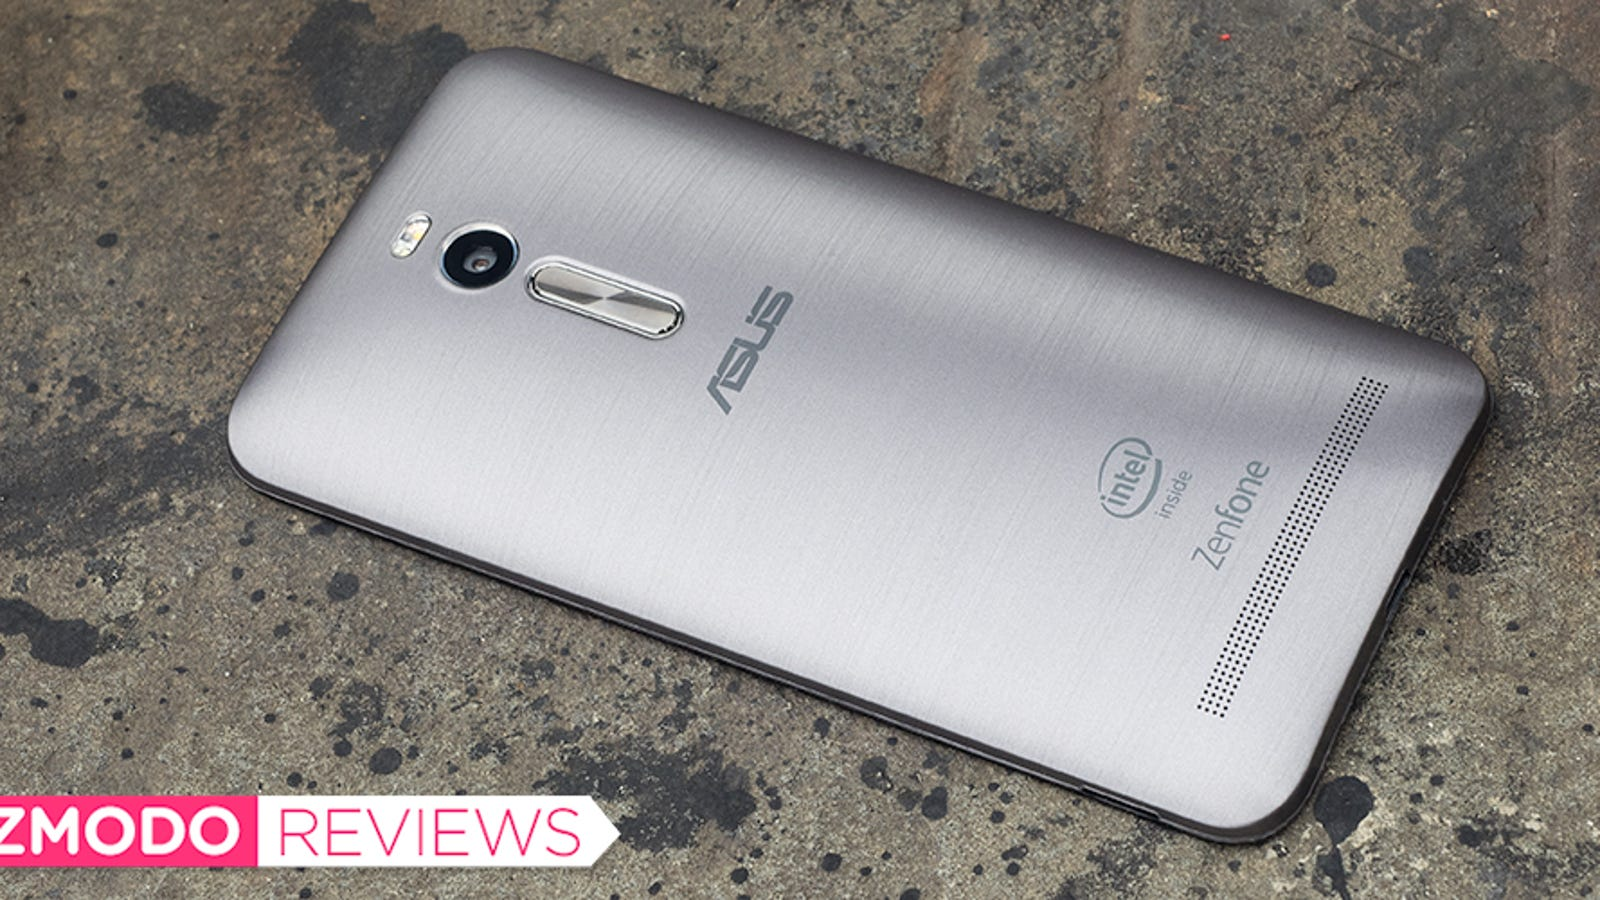 Zenfone 2 Review Why Shouldnt You Buy This Fantastic Budget Phone Ze551ml 2gb 16